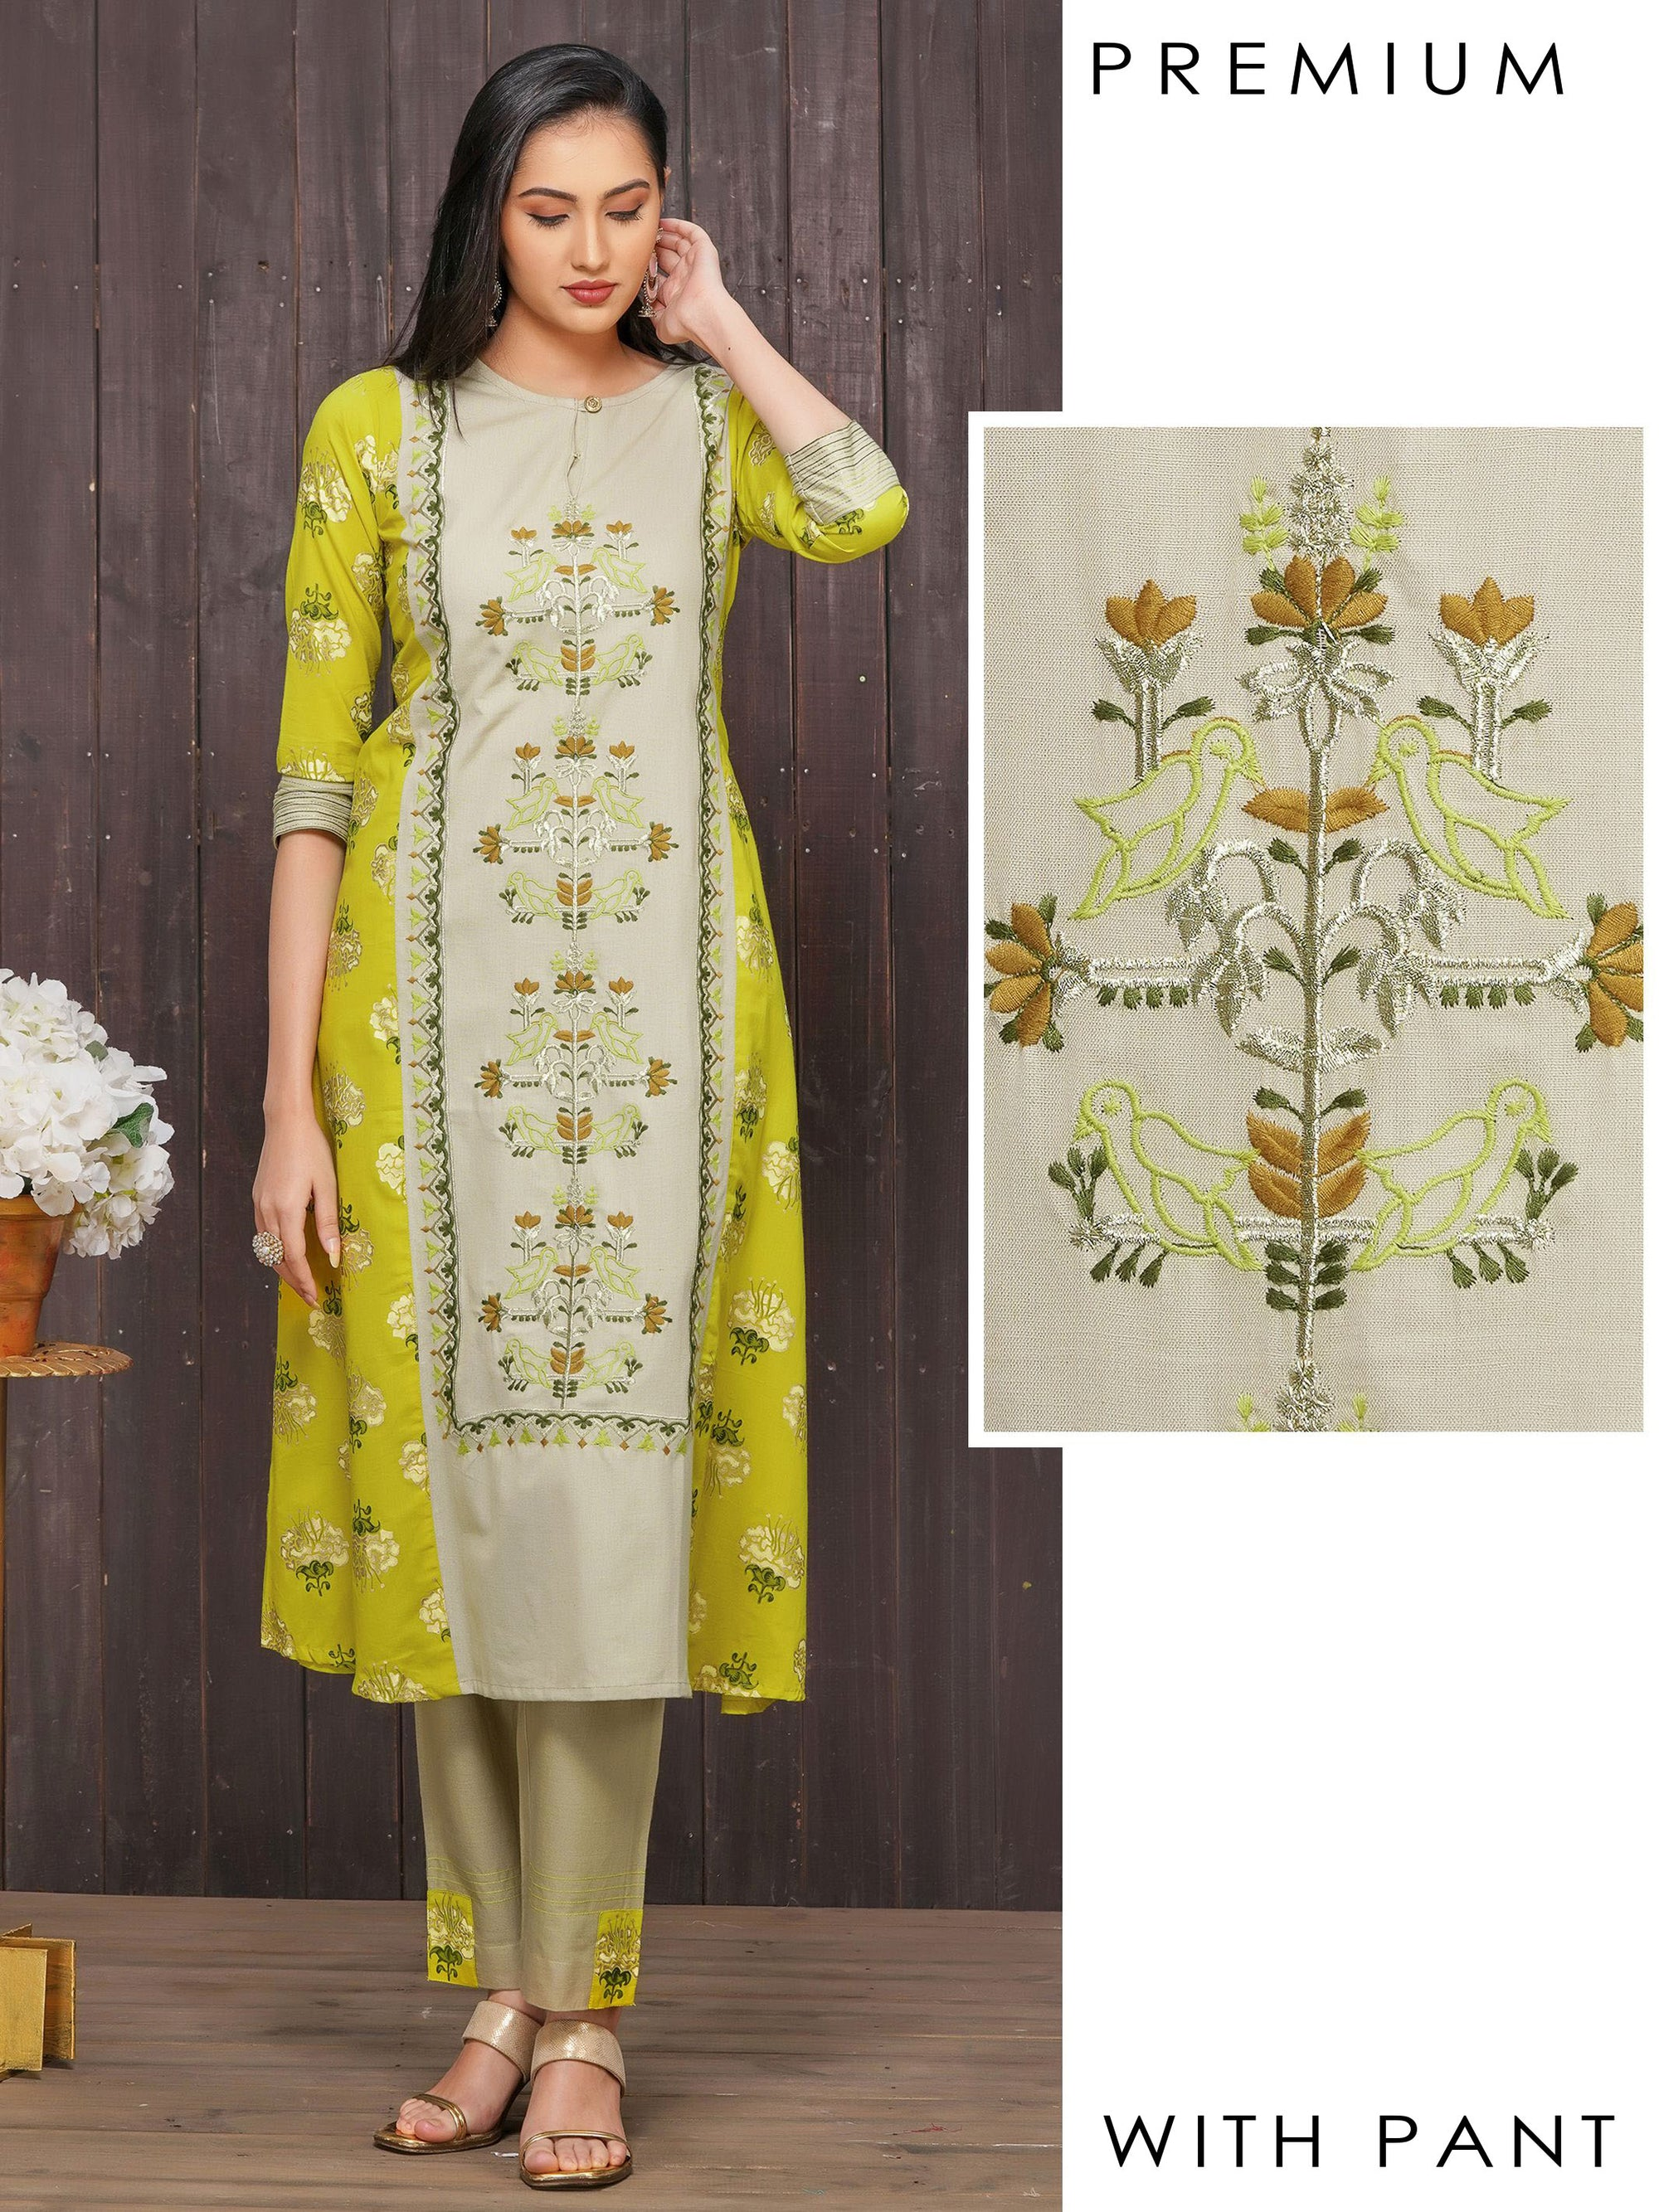 Floral & Bird Embroidered Kurti with Pant Set